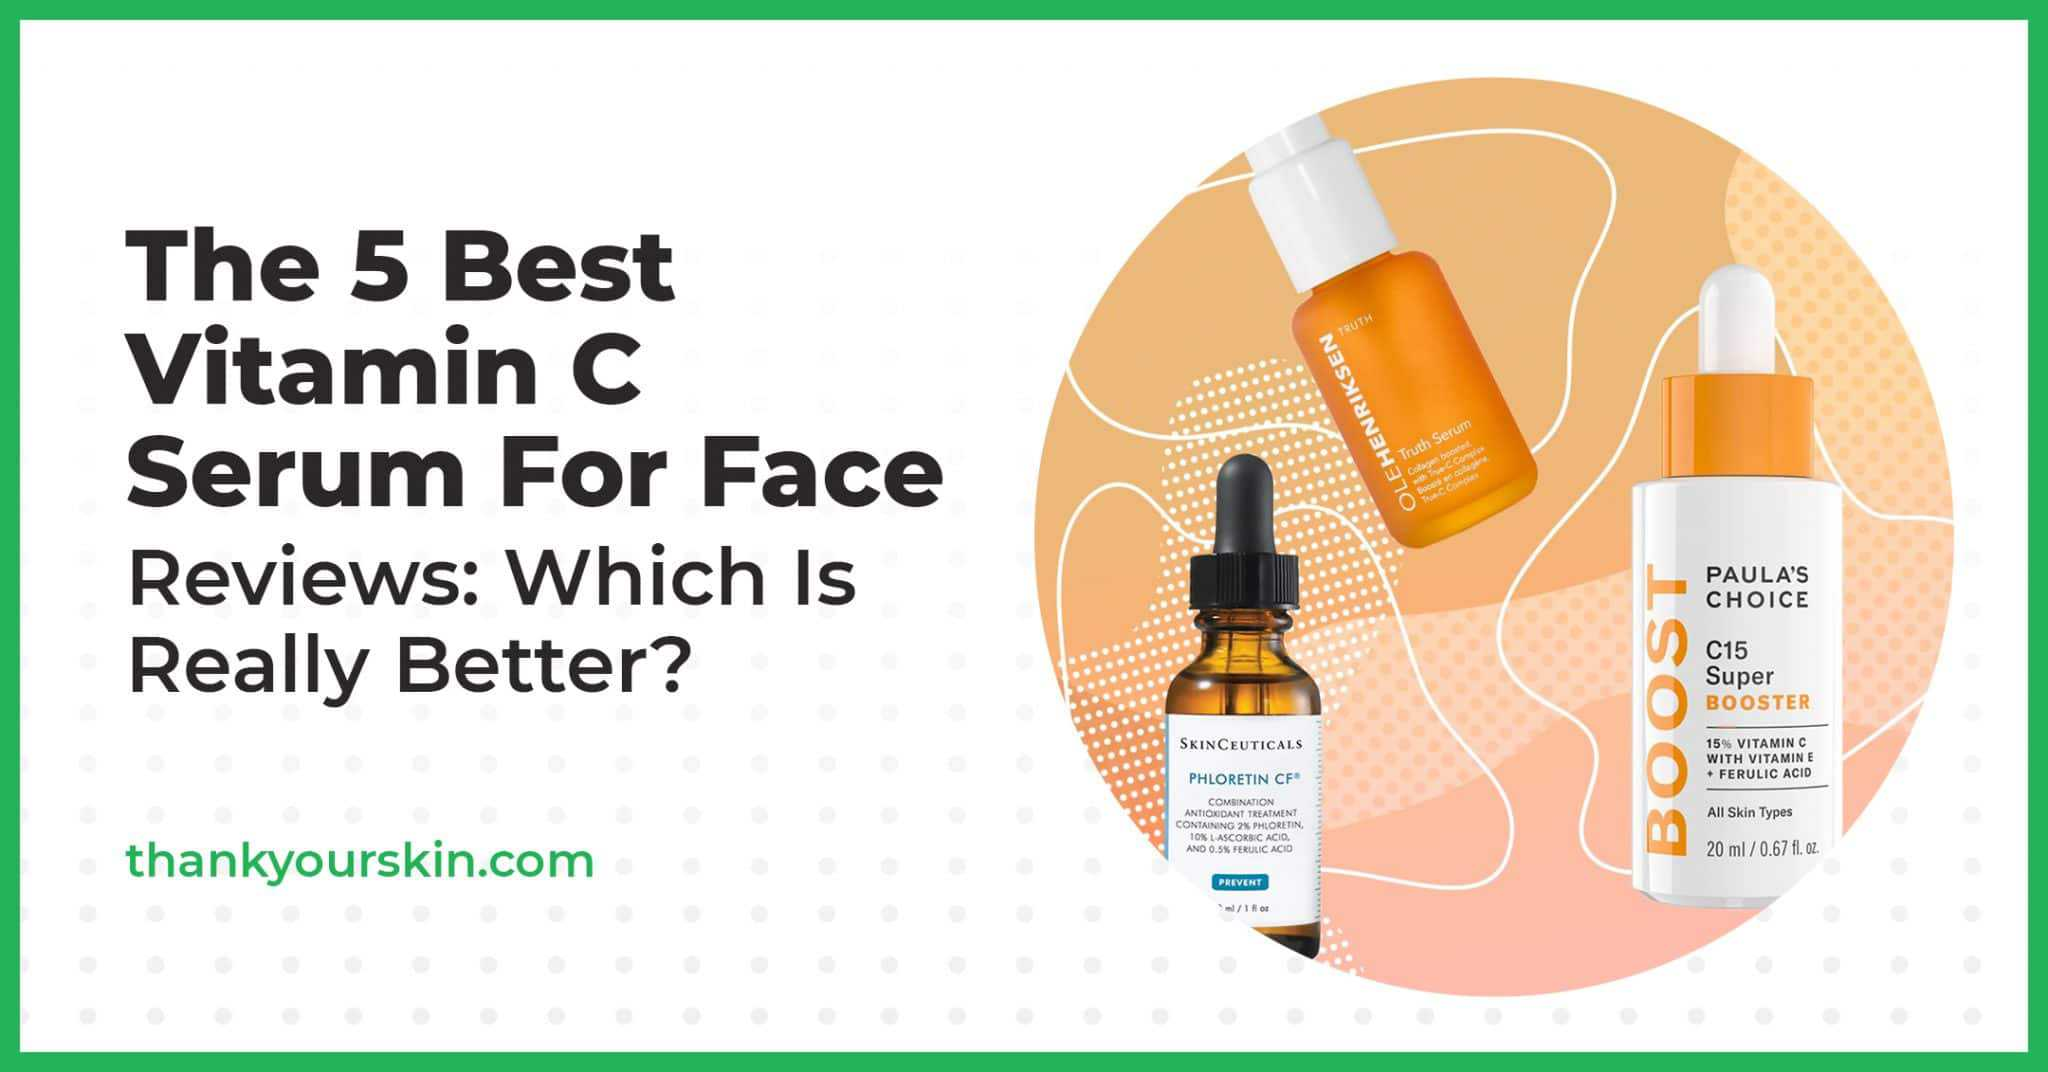 The 5 Best Vitamin C Serum For Face Reviews: Which Is Really Better?